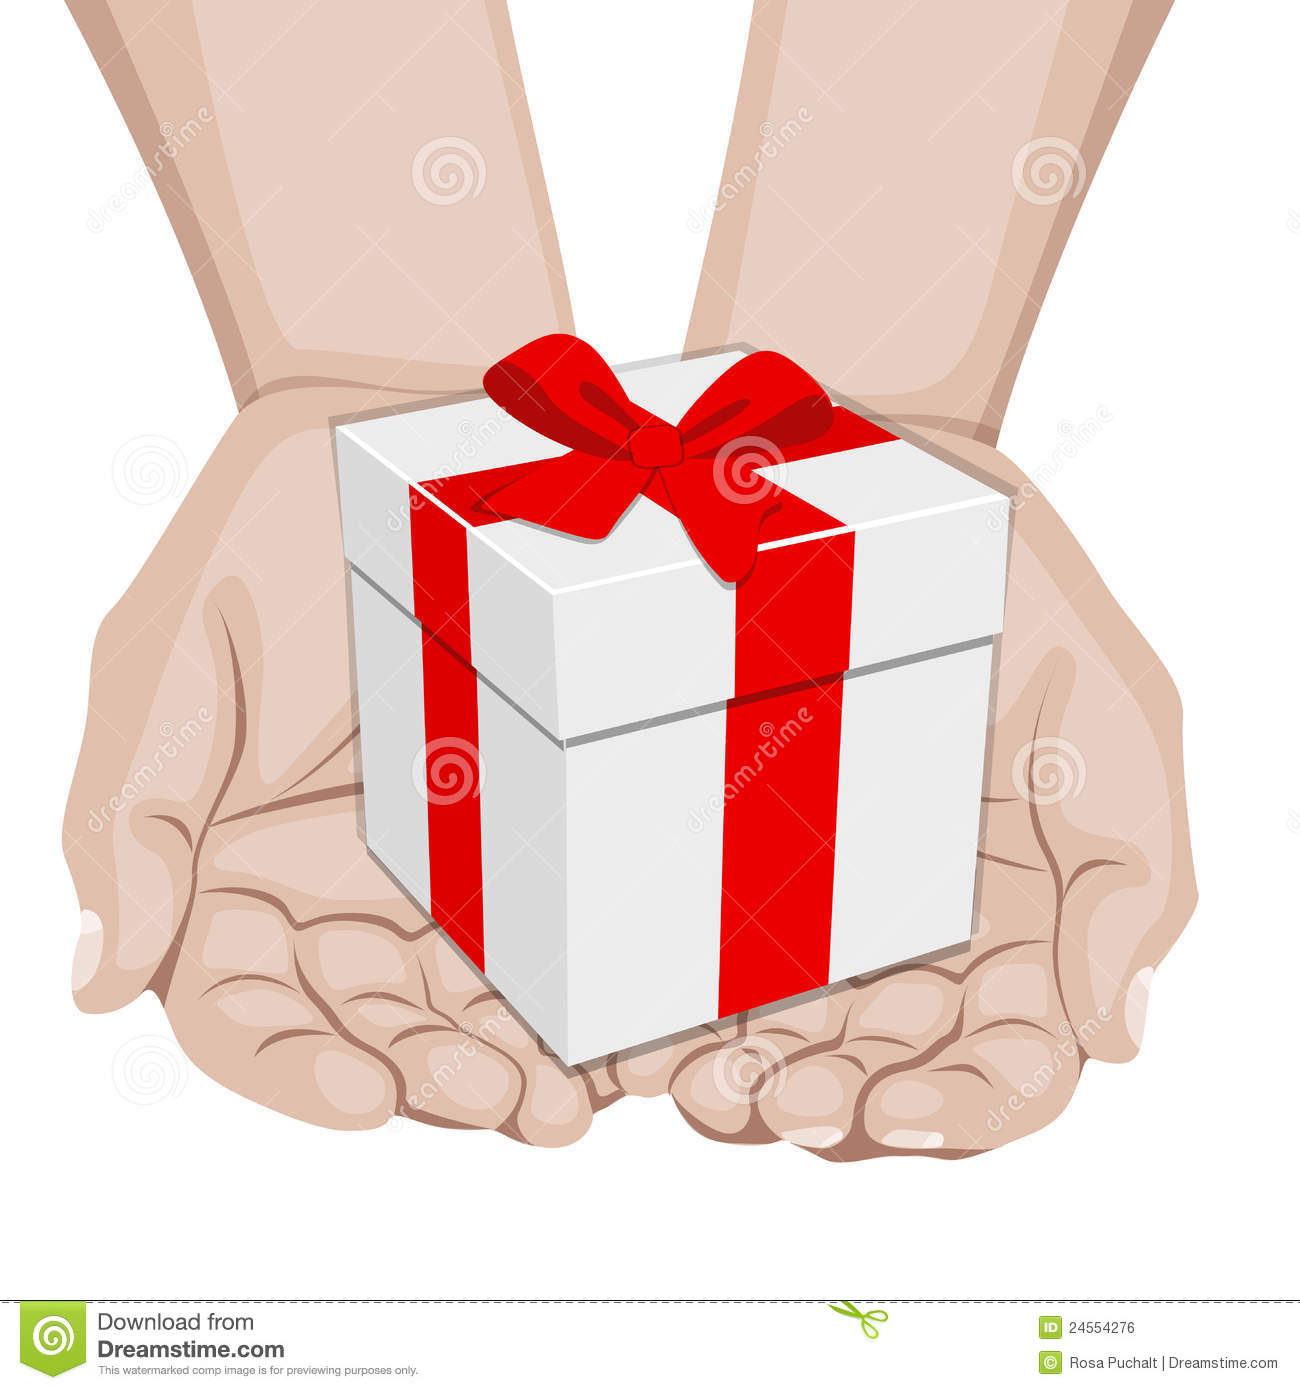 Hands Offering A Gift Royalty Free Stock Image   Image  24554276